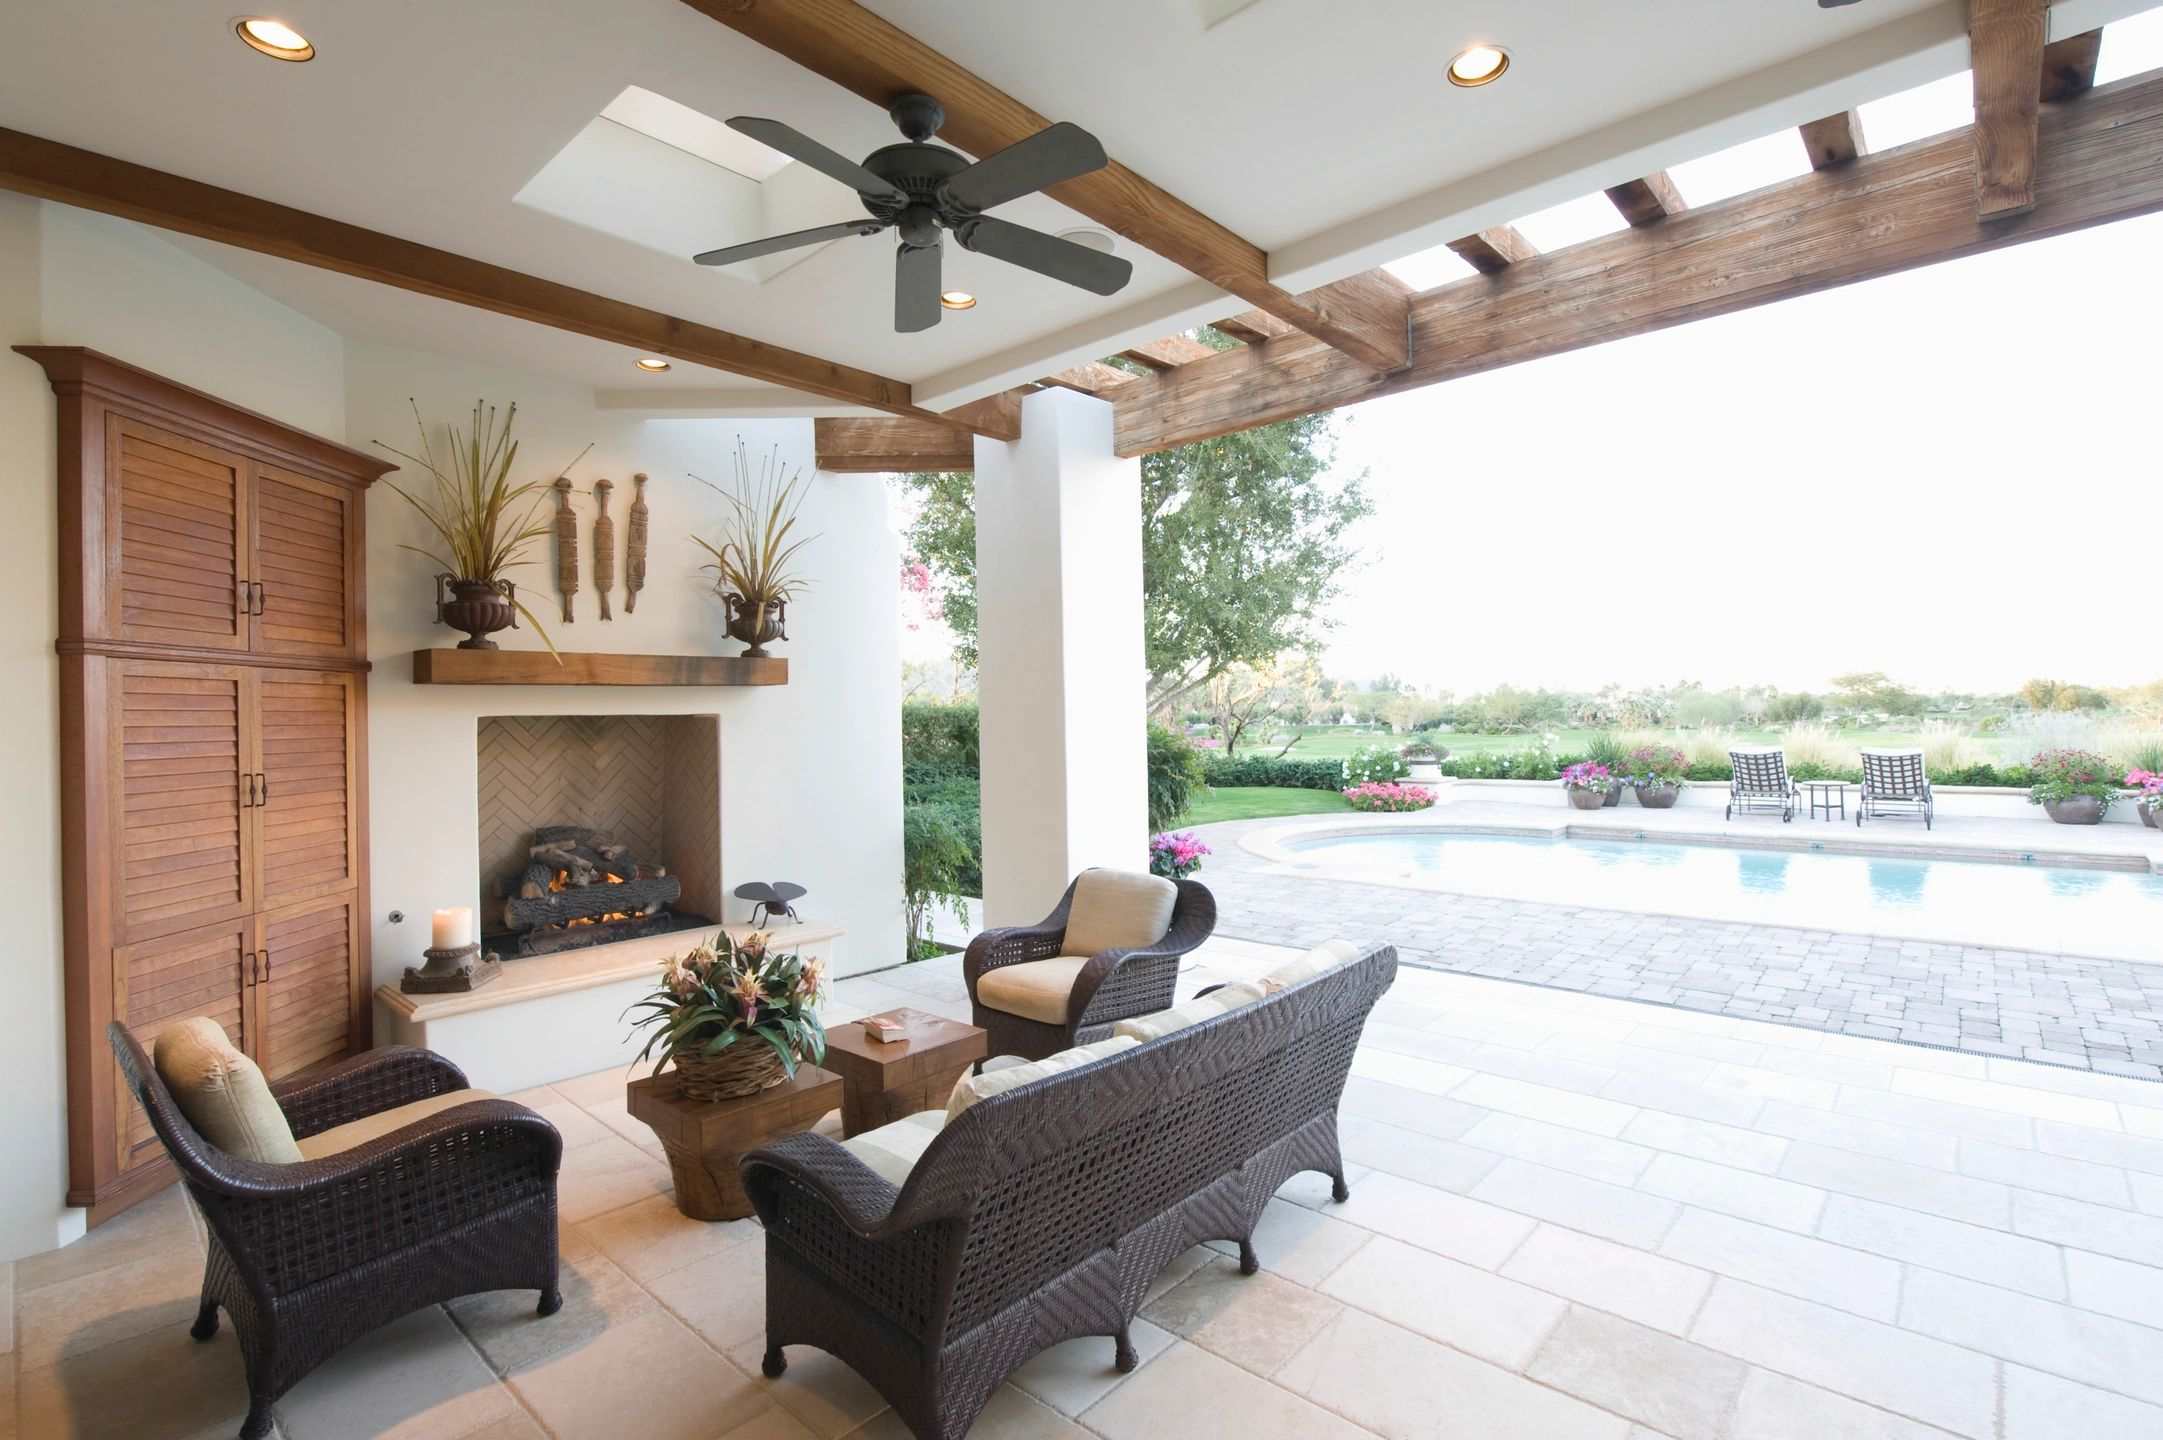 10 Must Know Staging Tips To Get Your Home Sold Quickly